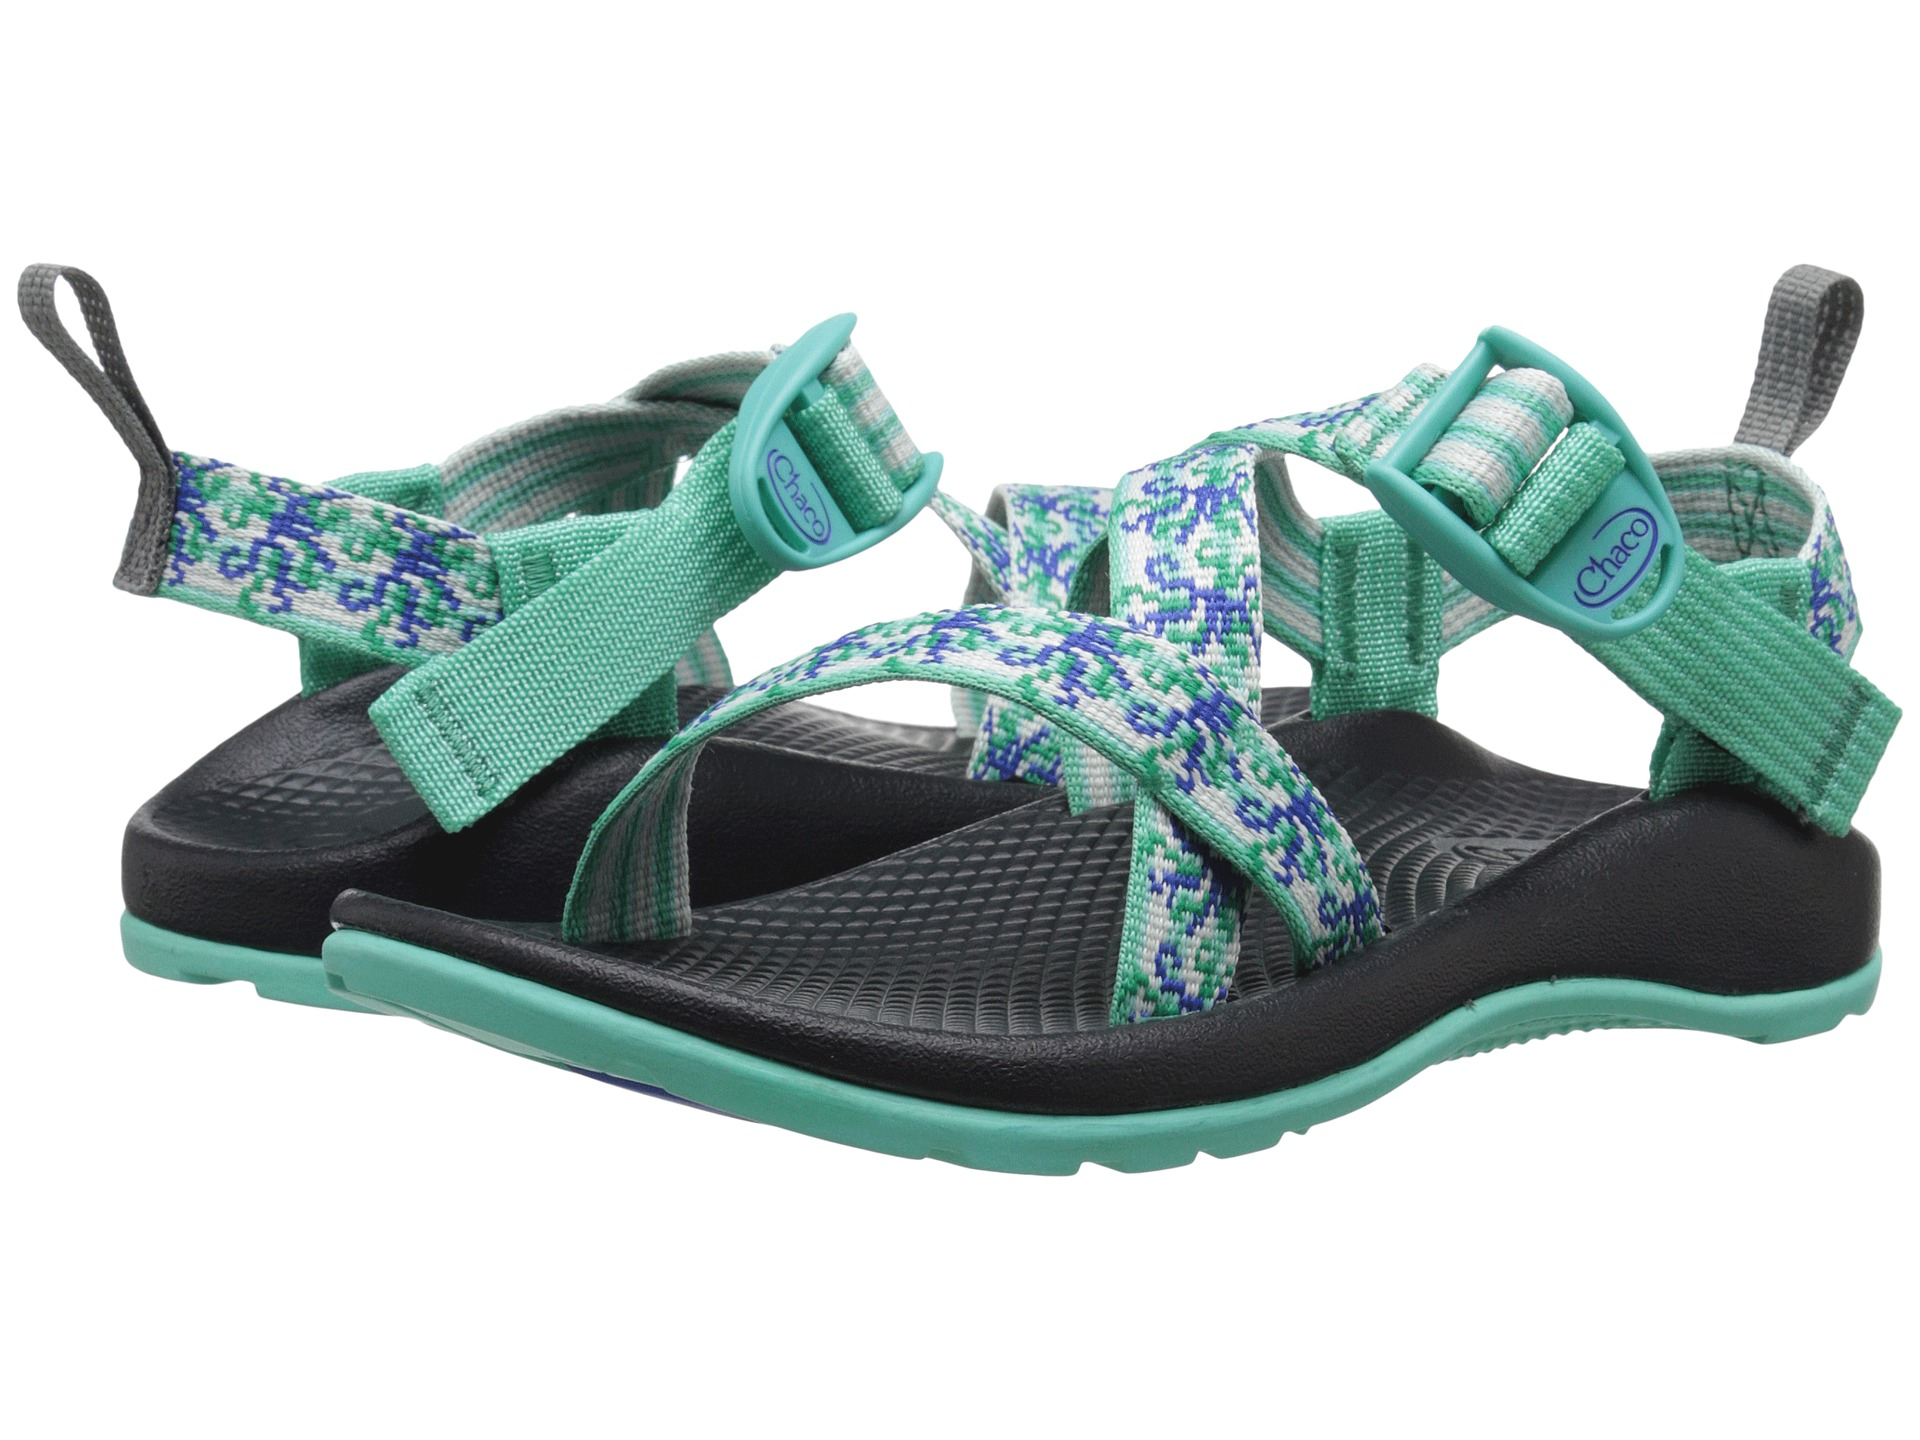 Toddler Aqua Shoes Kids